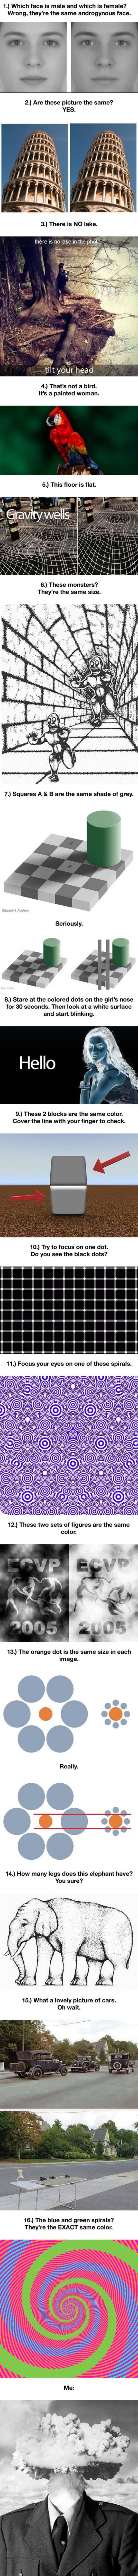 16 Incredible Optical Illusions That Will Melt Your Mind